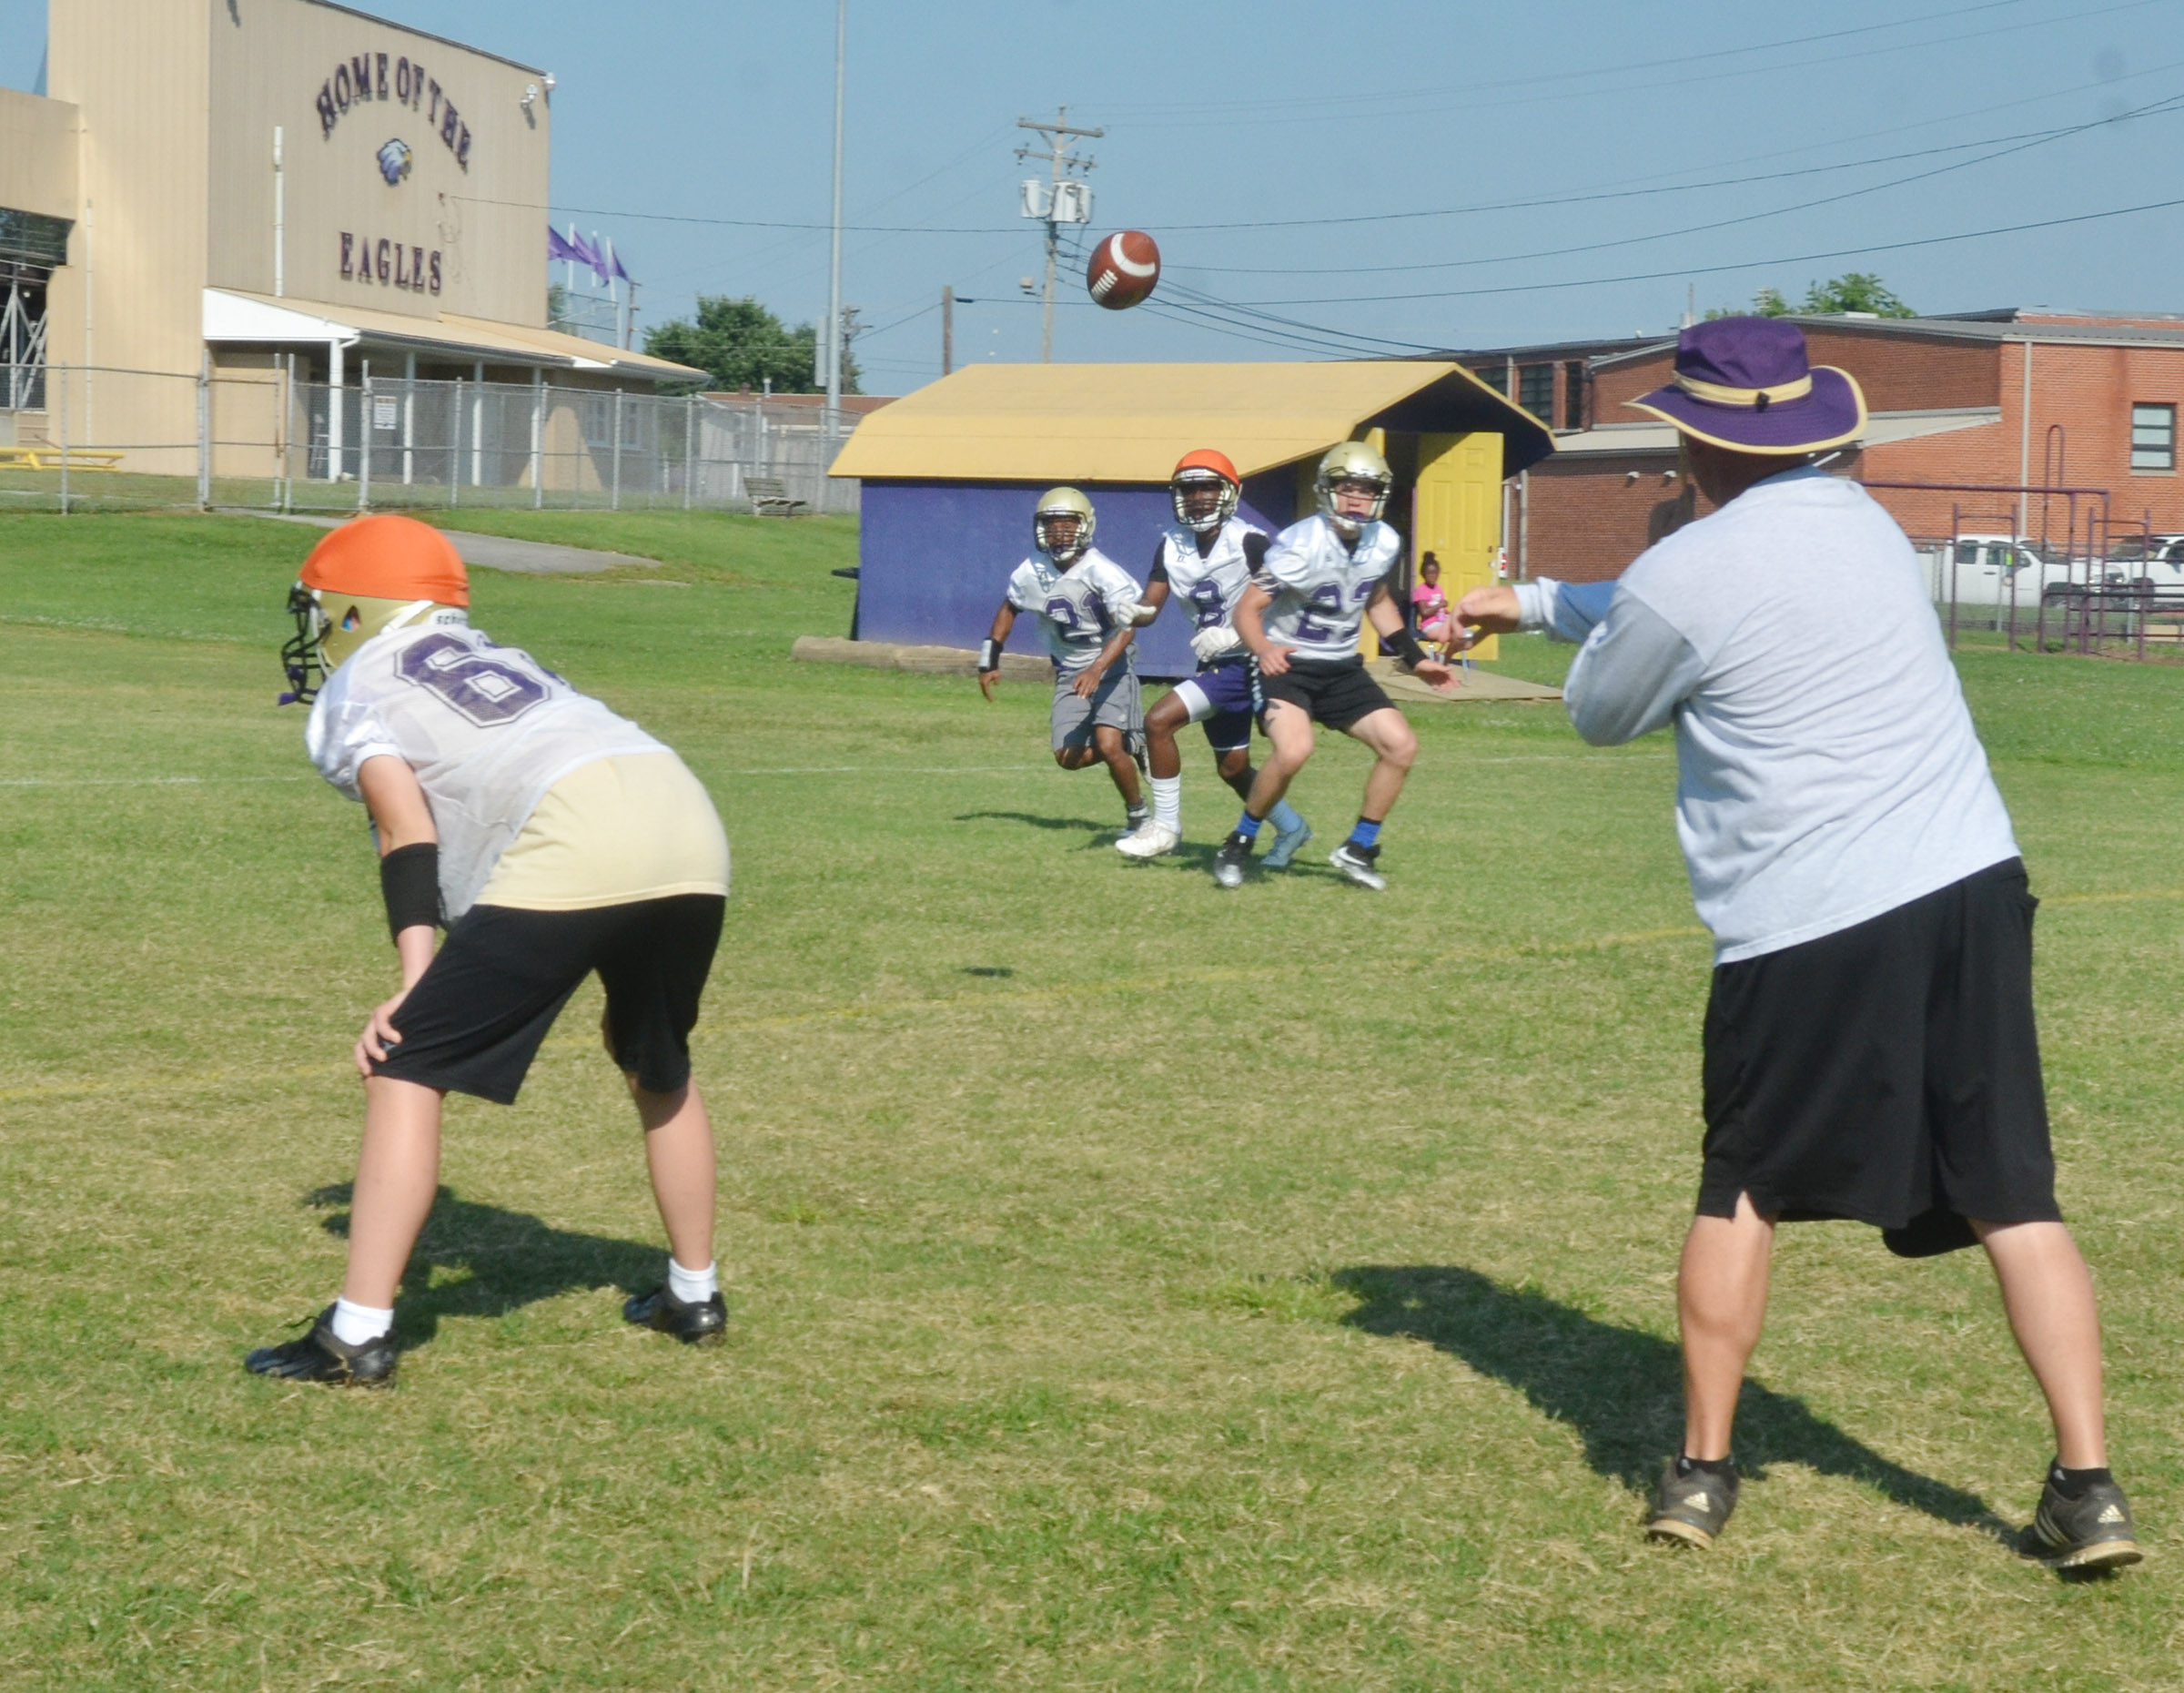 CHS head football coach Dale Estes throws a pass.